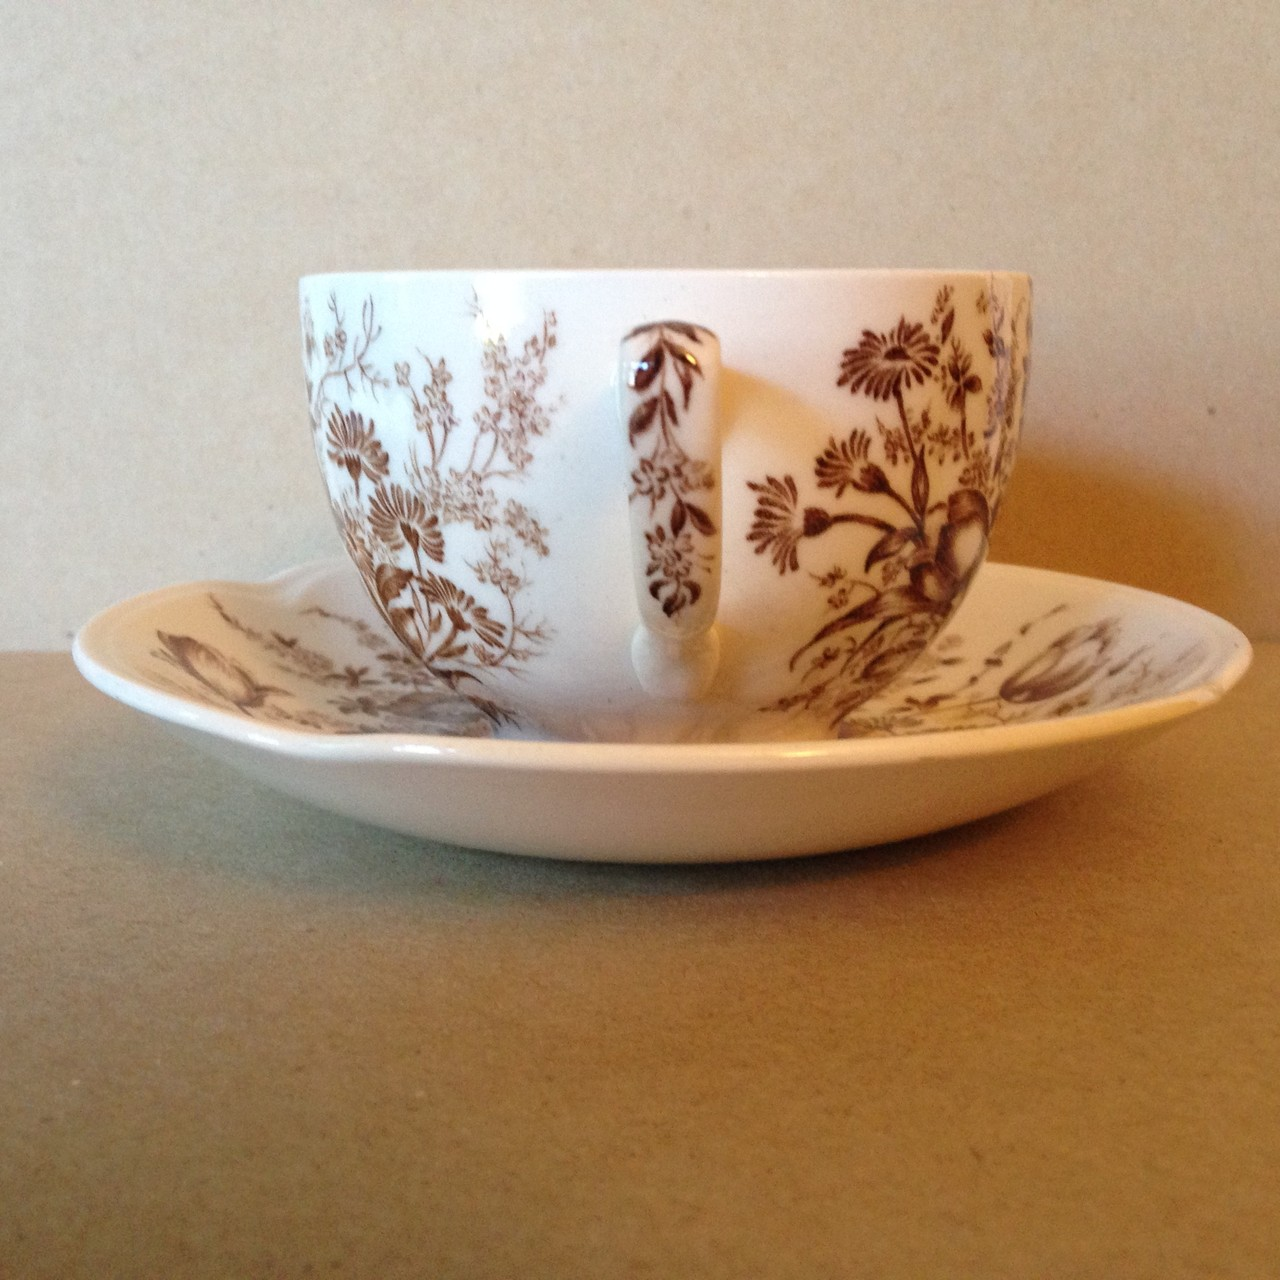 Brown Toile Transferware Tulip Vintage Cup and Saucer Edge www.DecorativeDishes.net